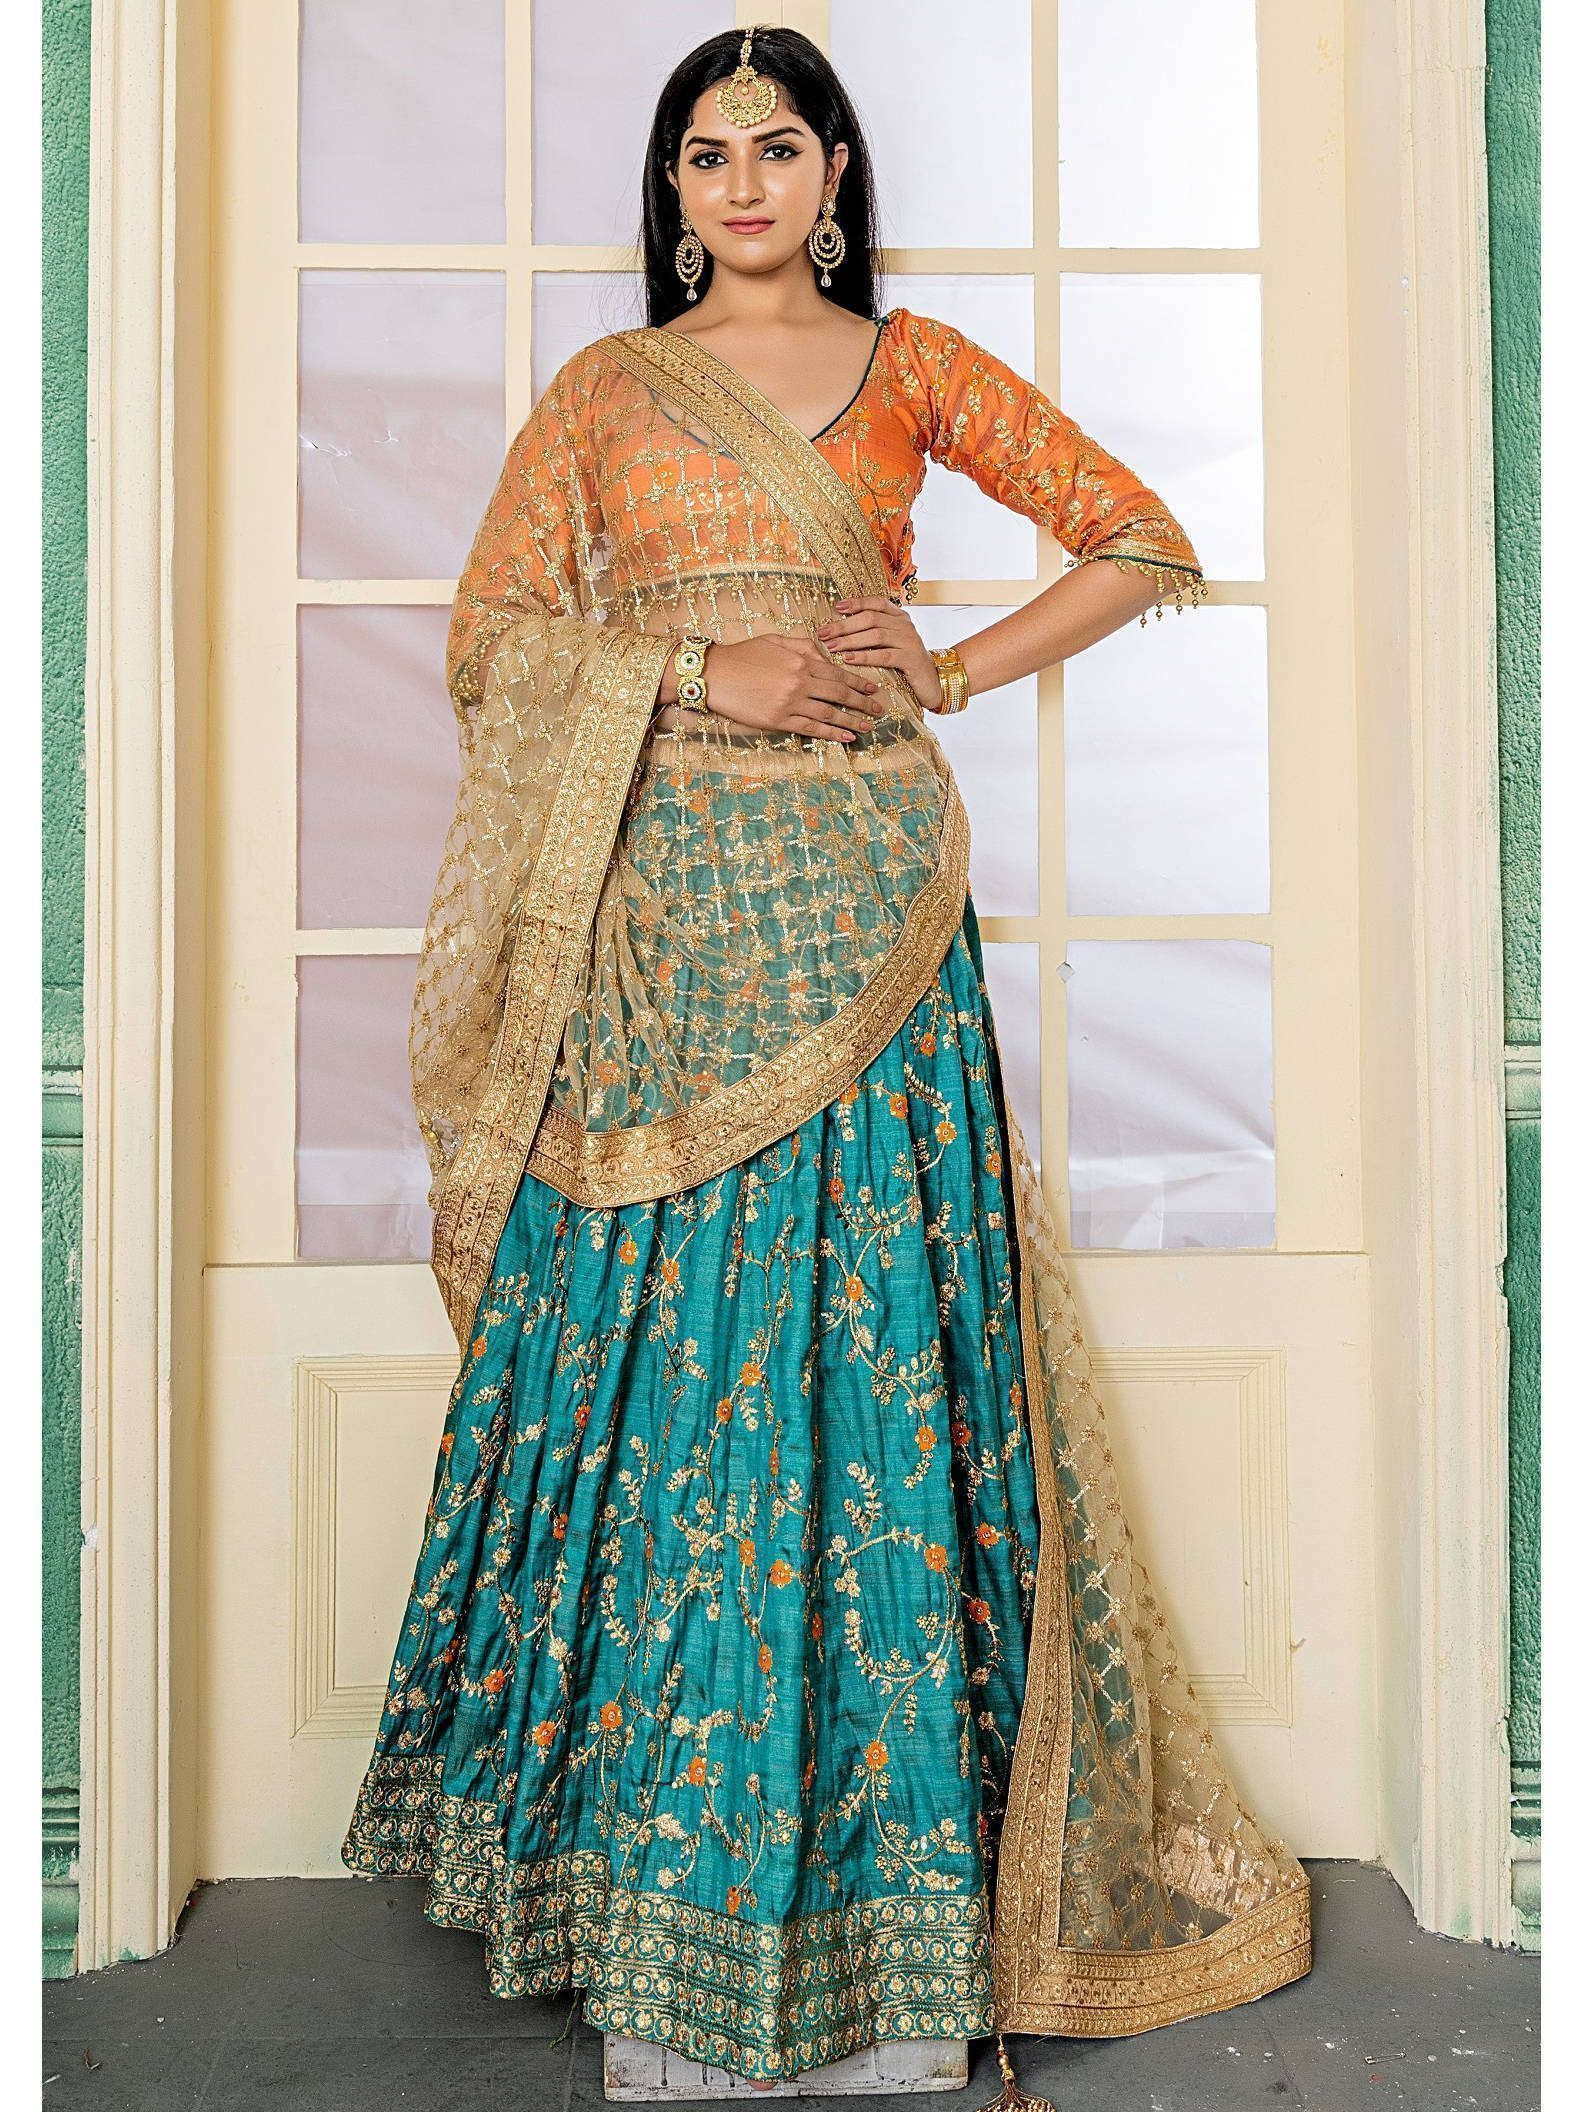 Turquoise Heavy Embroidered Bridal Phantom Silk Lehenga Choli